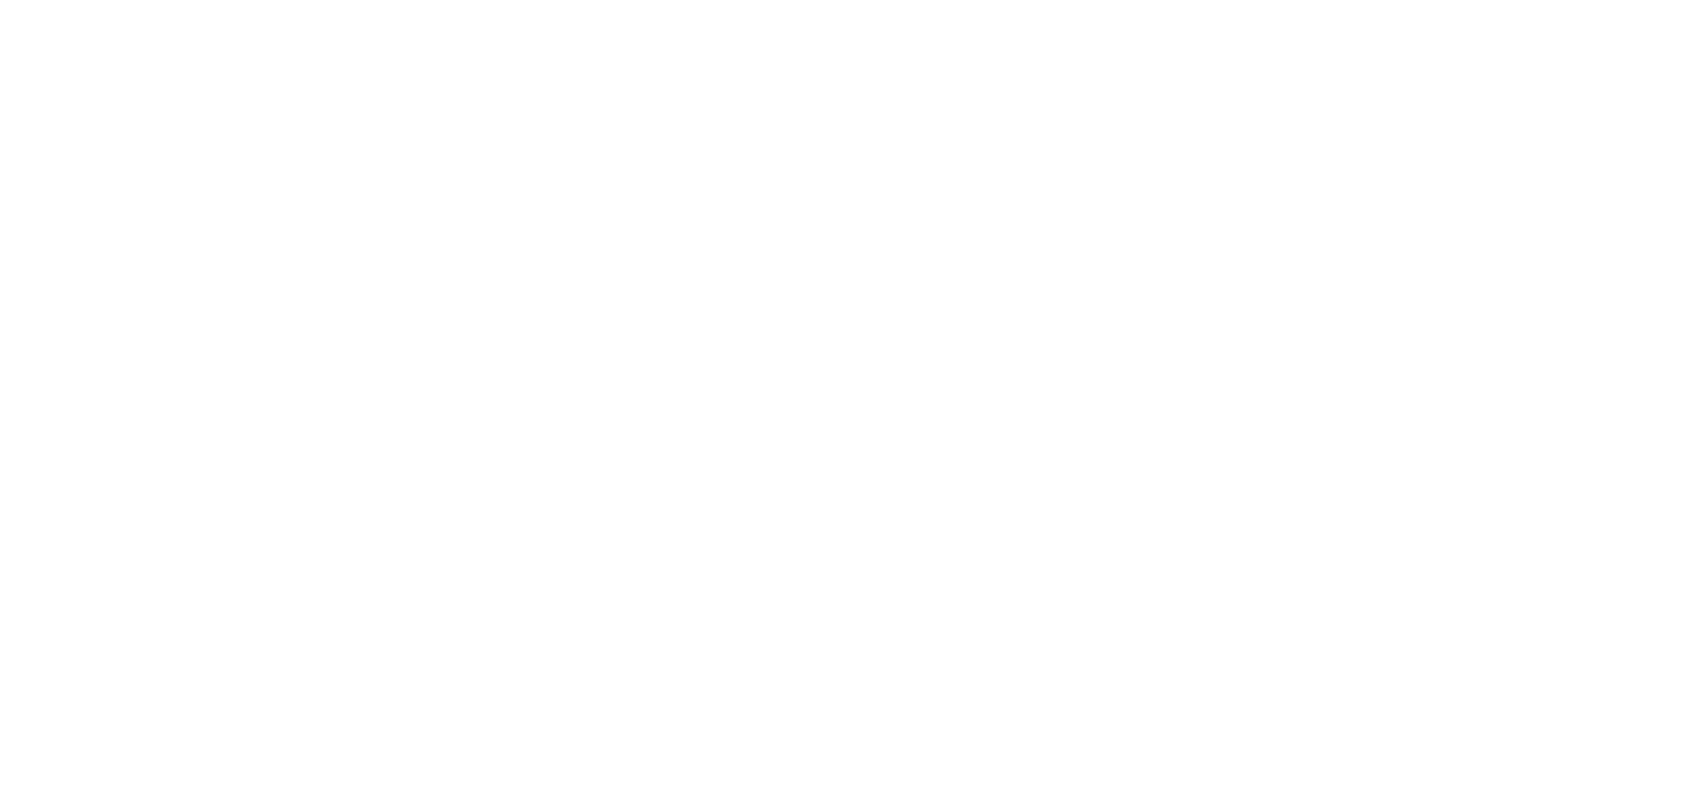 BYP is a program of the Boise Metro Chamber